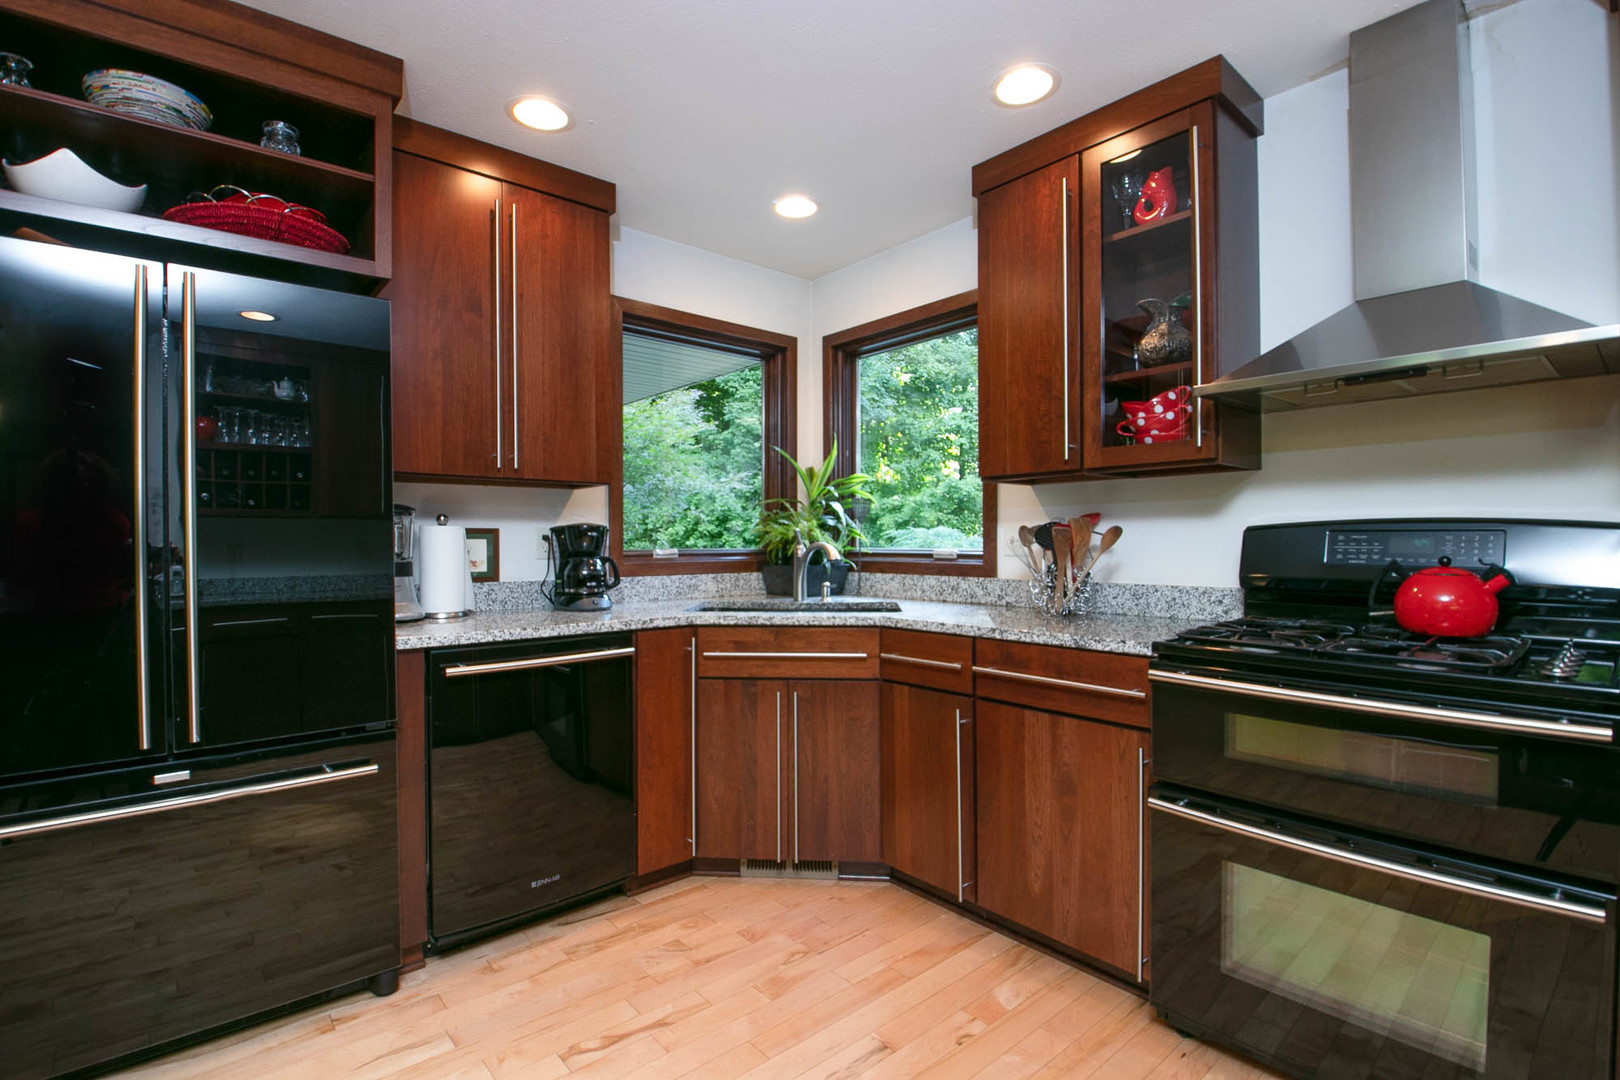 hardwood flooring in rockford il of propertyup10075979sale 1730 north mulford rockford illinois 61107 with regard to 1730 mulford rockford illinois 61107